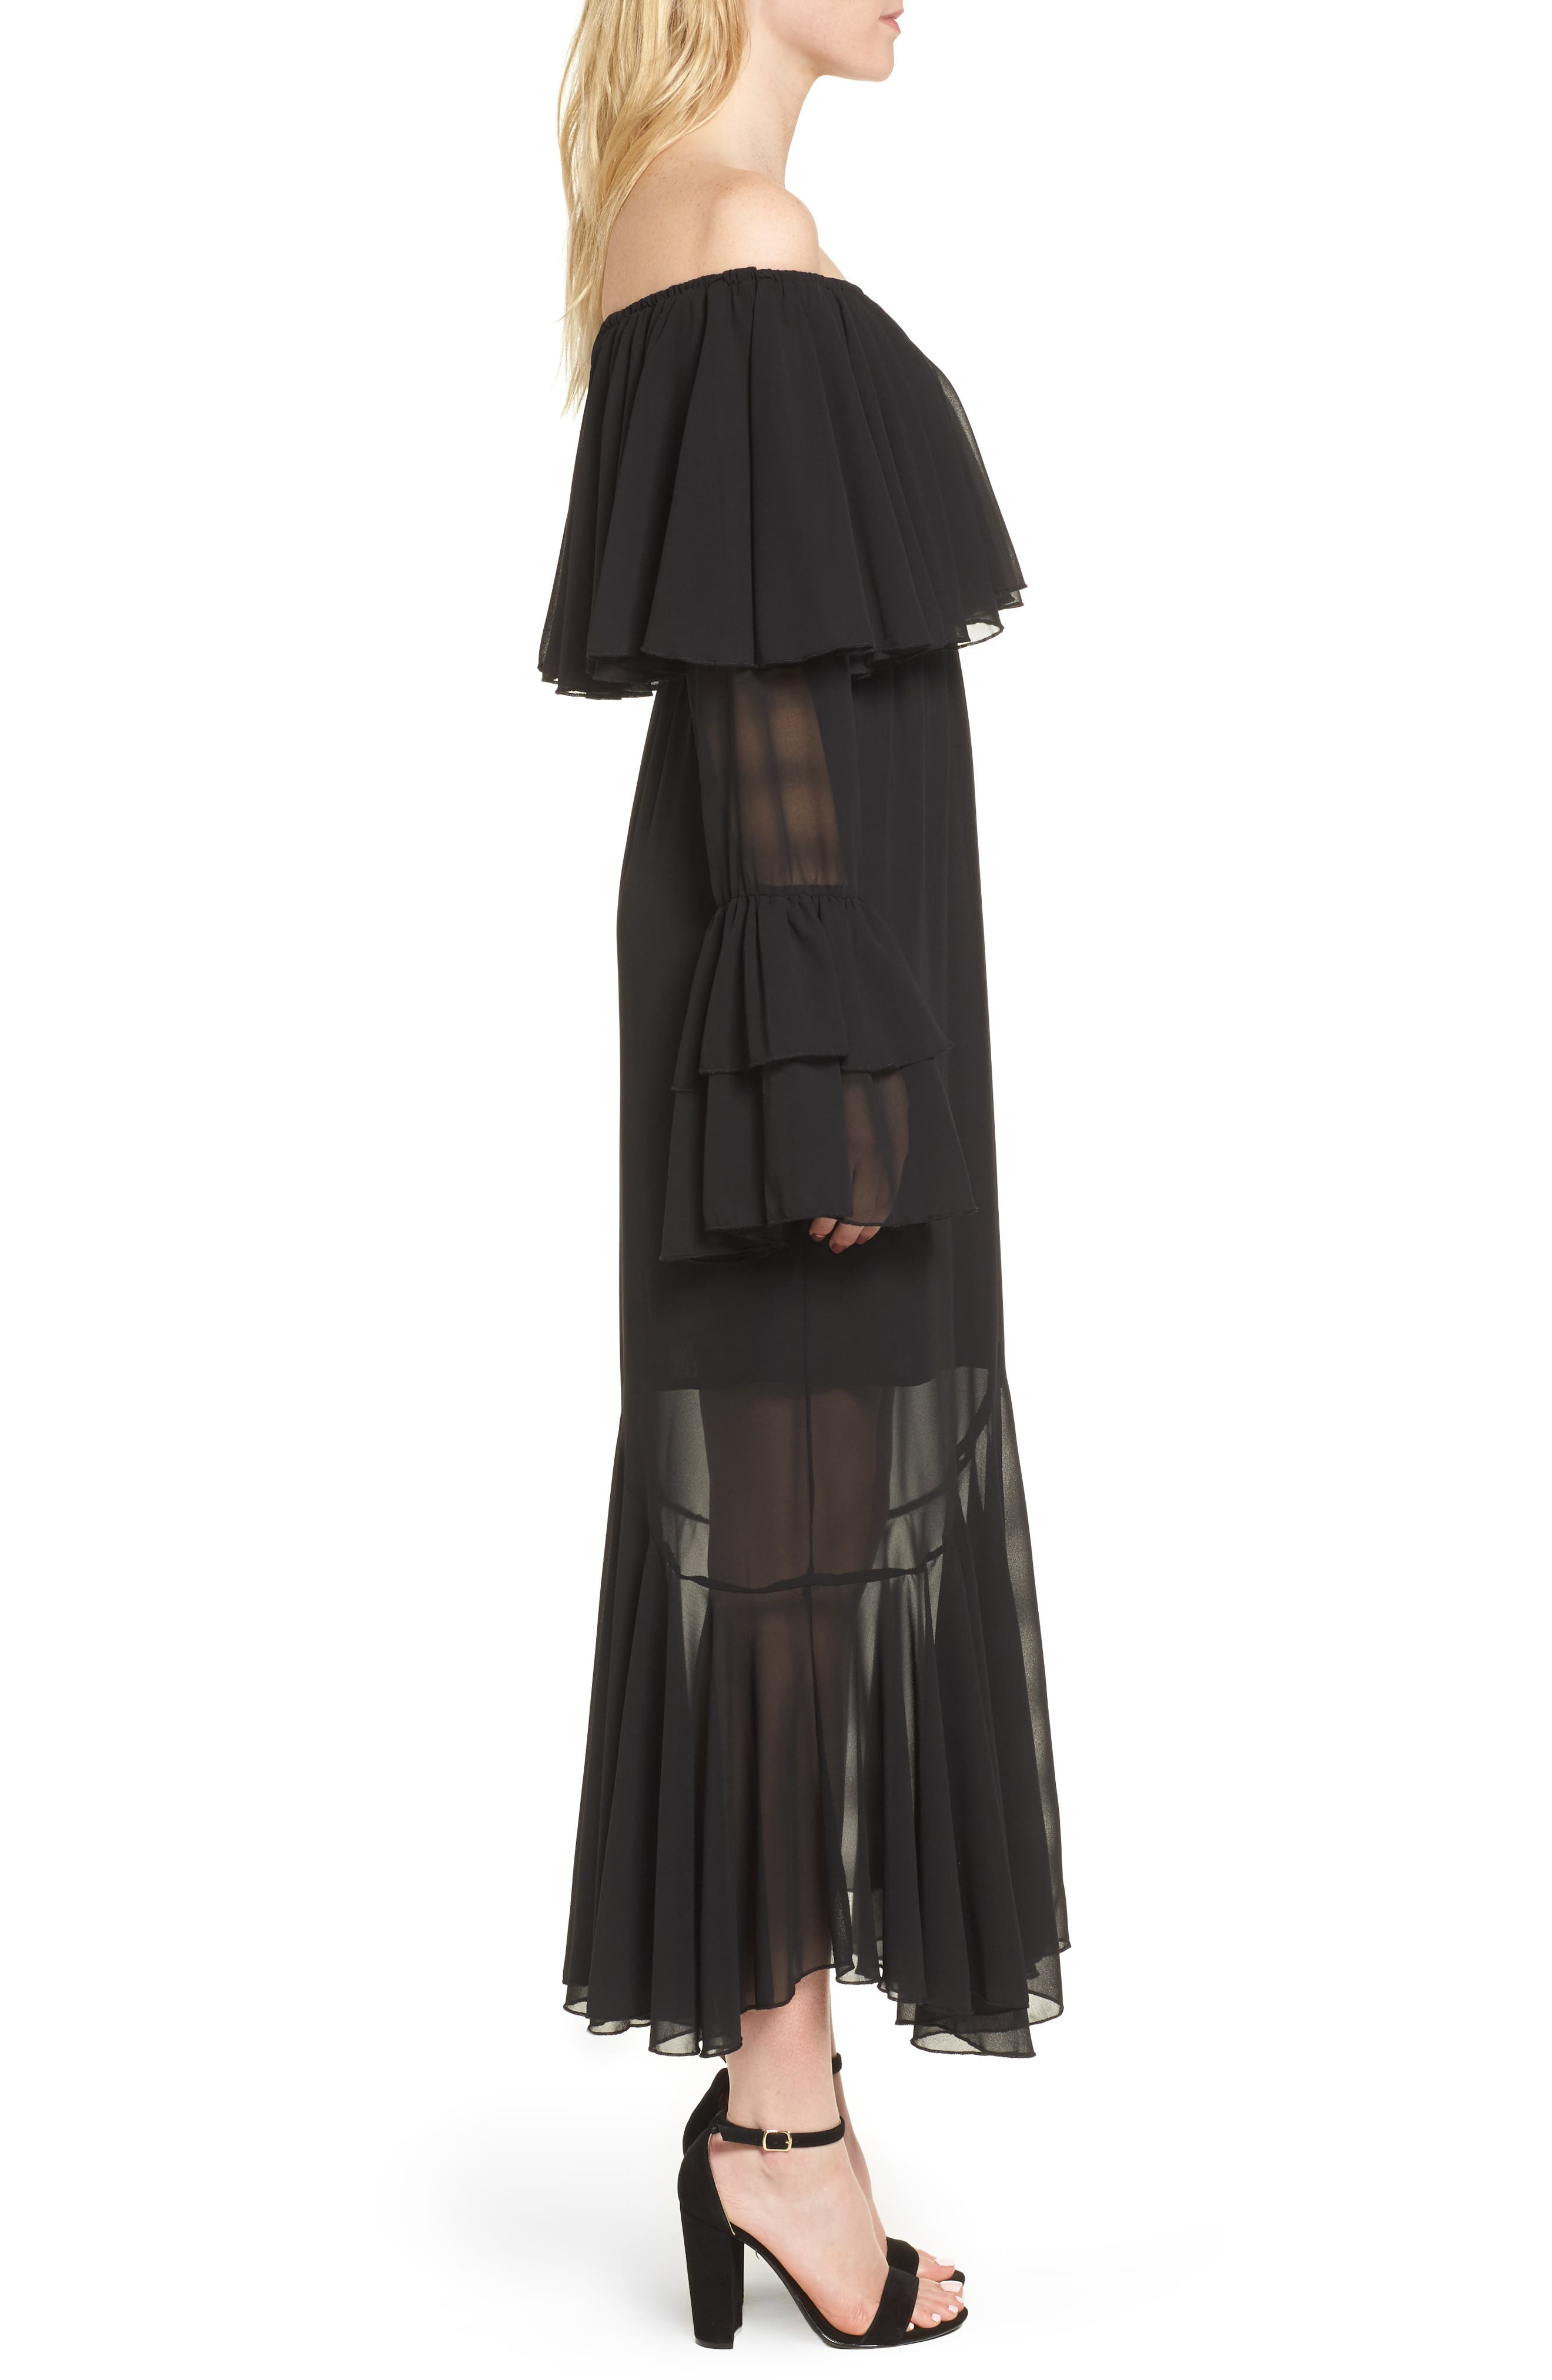 STYLEKEEPERS,                             Day Dreamer Dress,                             Alternate thumbnail 3, color,                             001